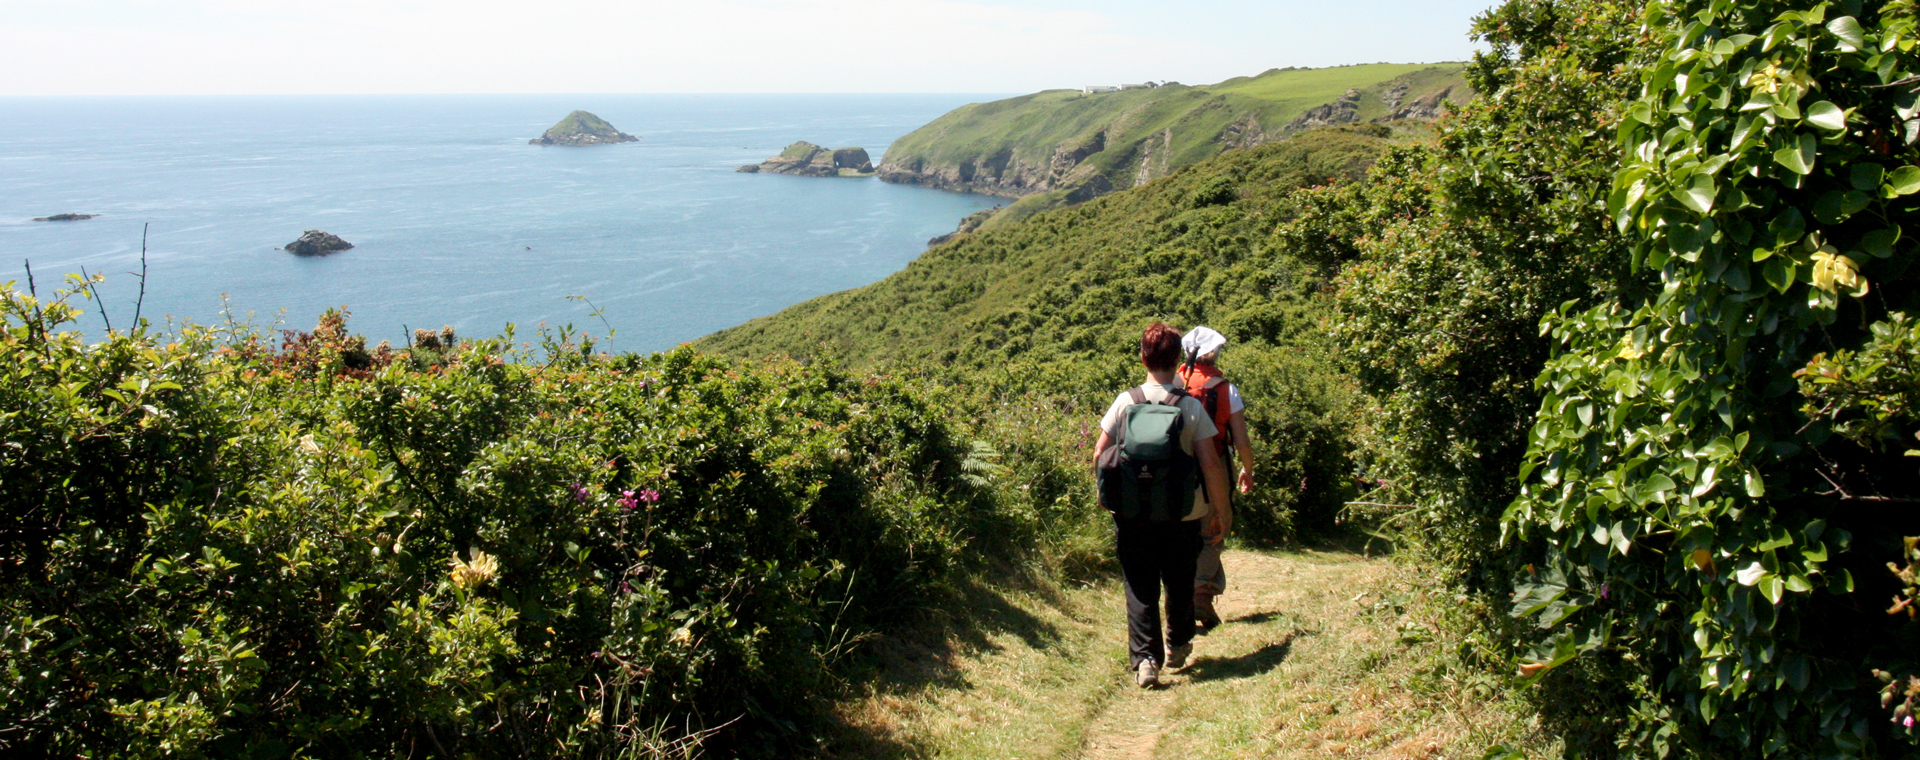 Voyage à pied : Îles Anglo-Normandes : Jersey, Guernesey, Sark et Herm